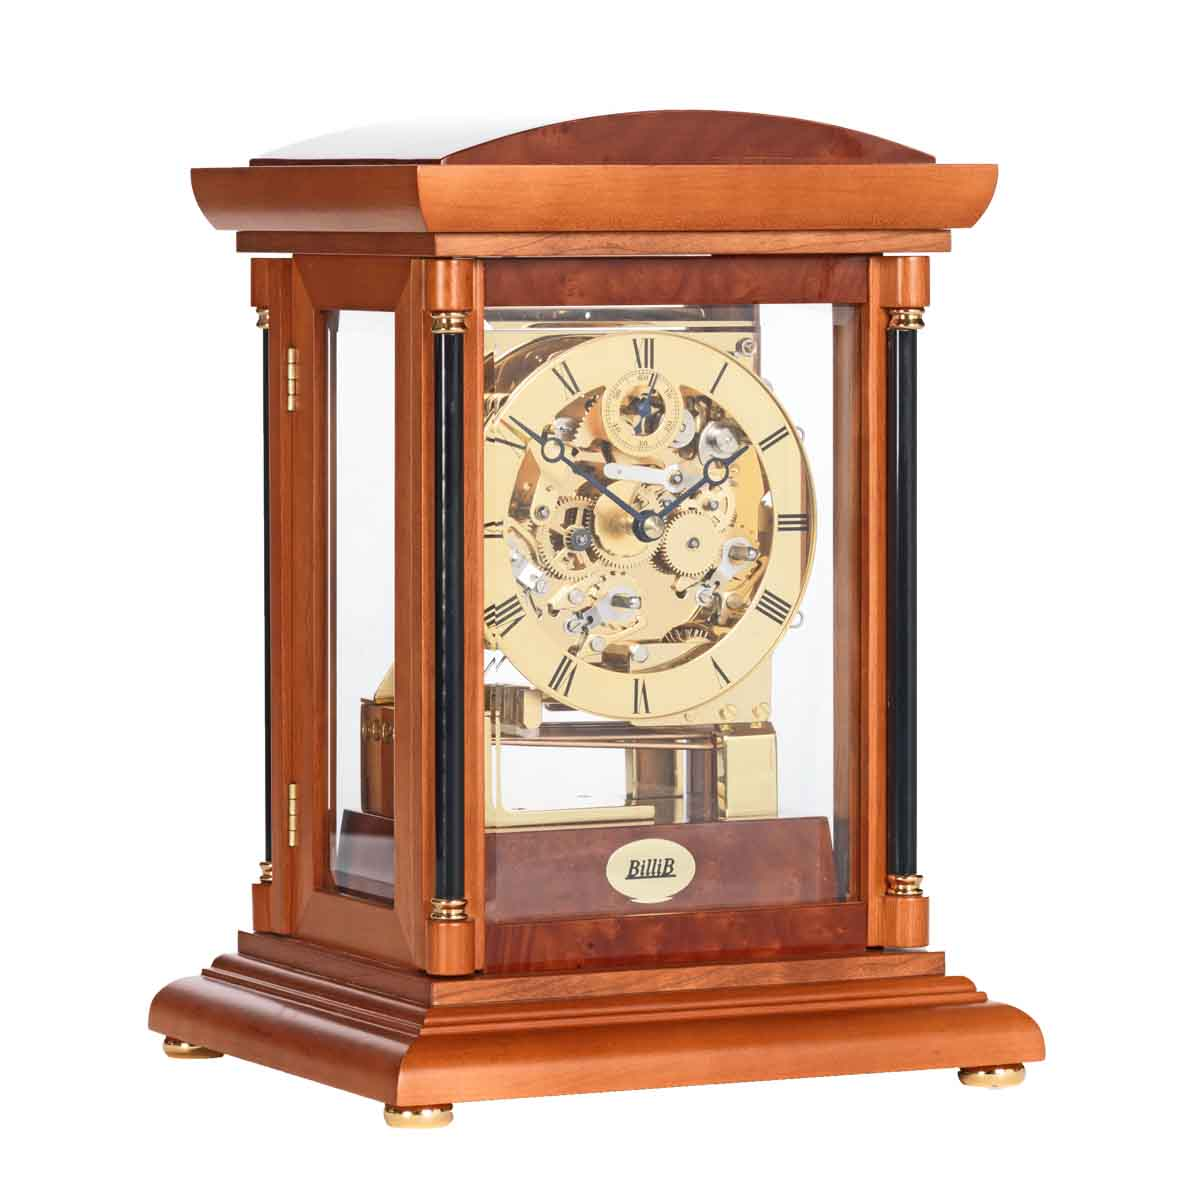 BRADLEY Yew Finish Mantel Table Clock